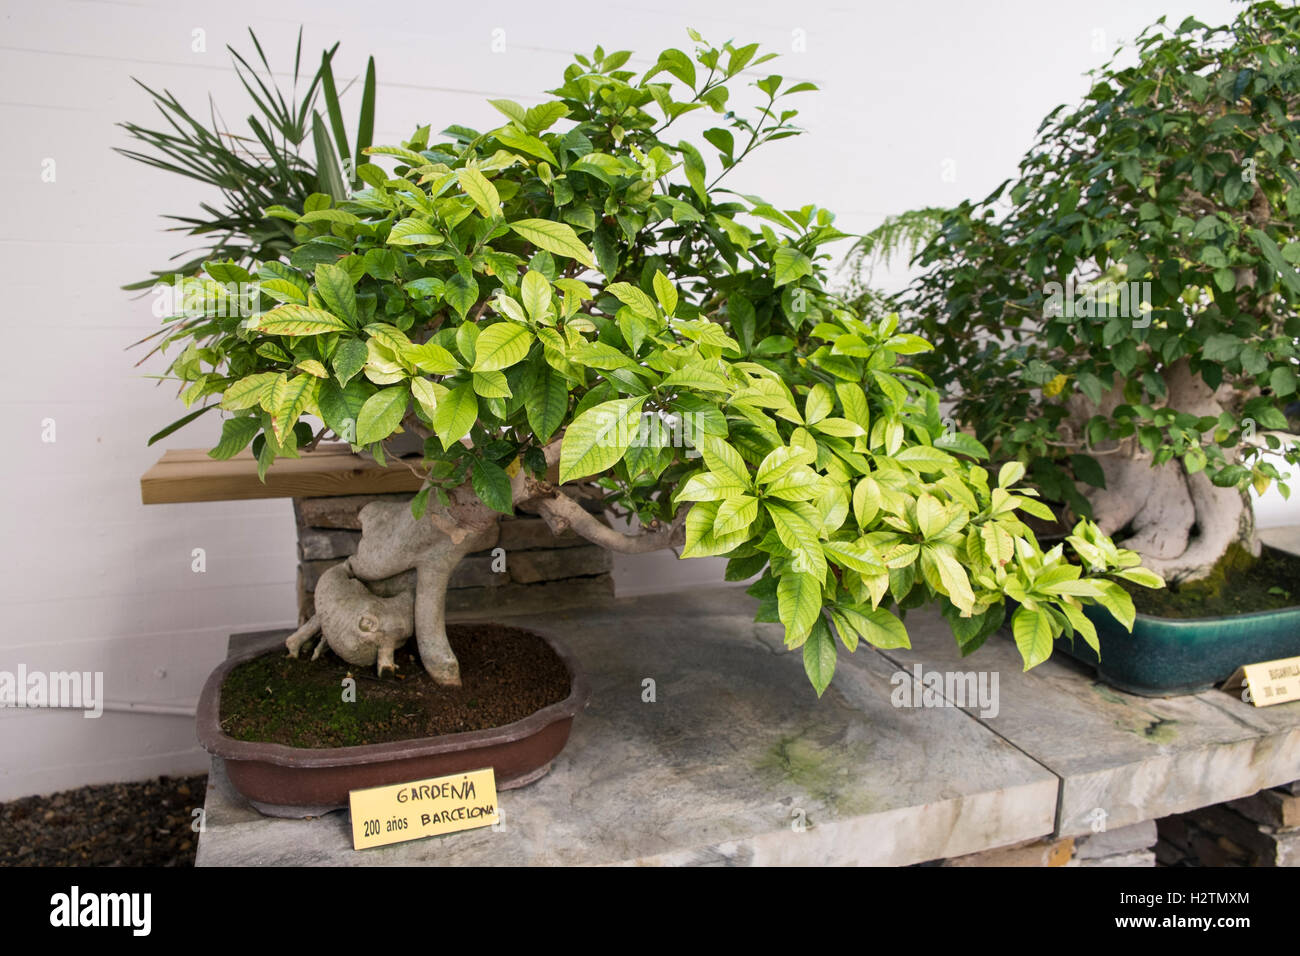 200 Years Old Gardenia Bonsai Tree. Marbella Bonsai Museum. Málaga, Costa  Del Sol